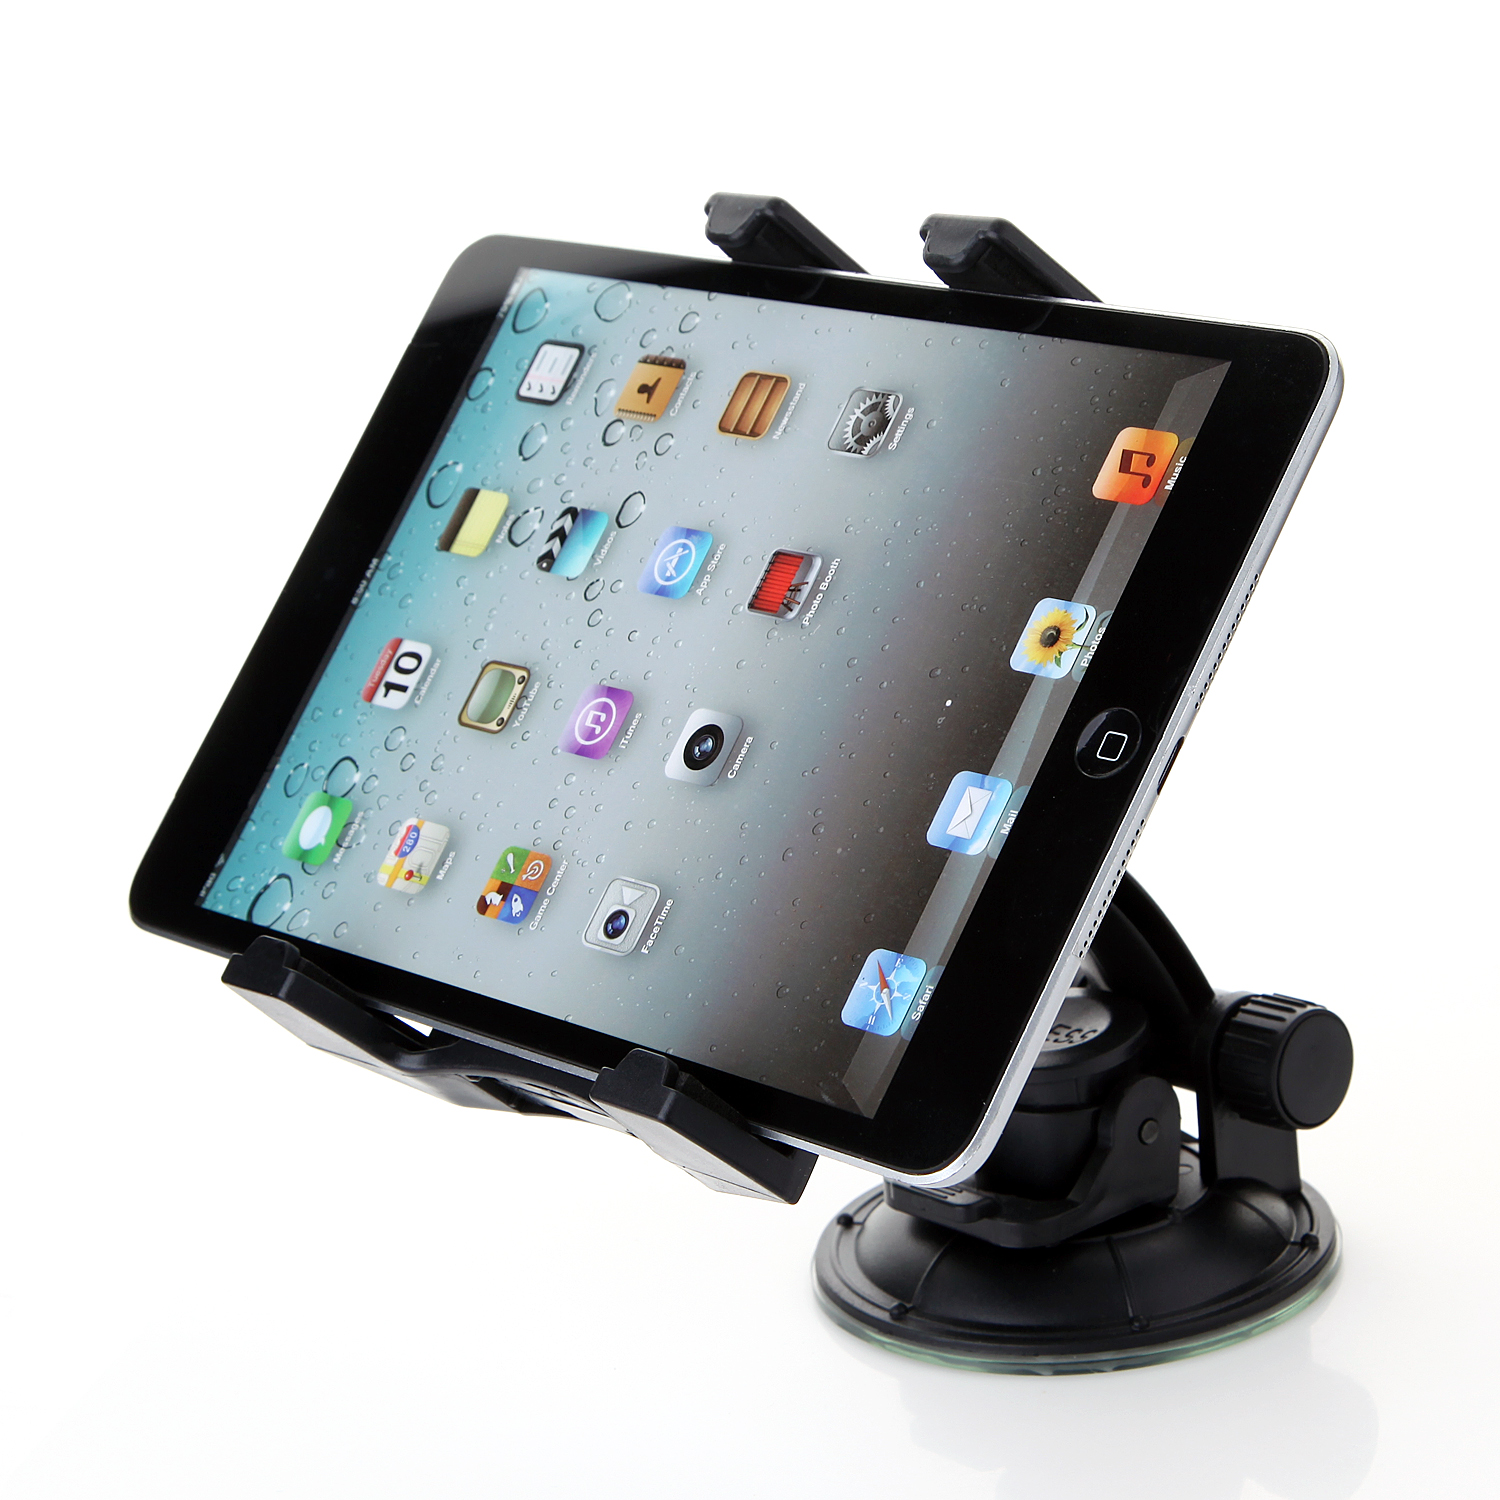 360degree Rotation Stand Holder with Suction Cup for 4-11in Tablet PC Black